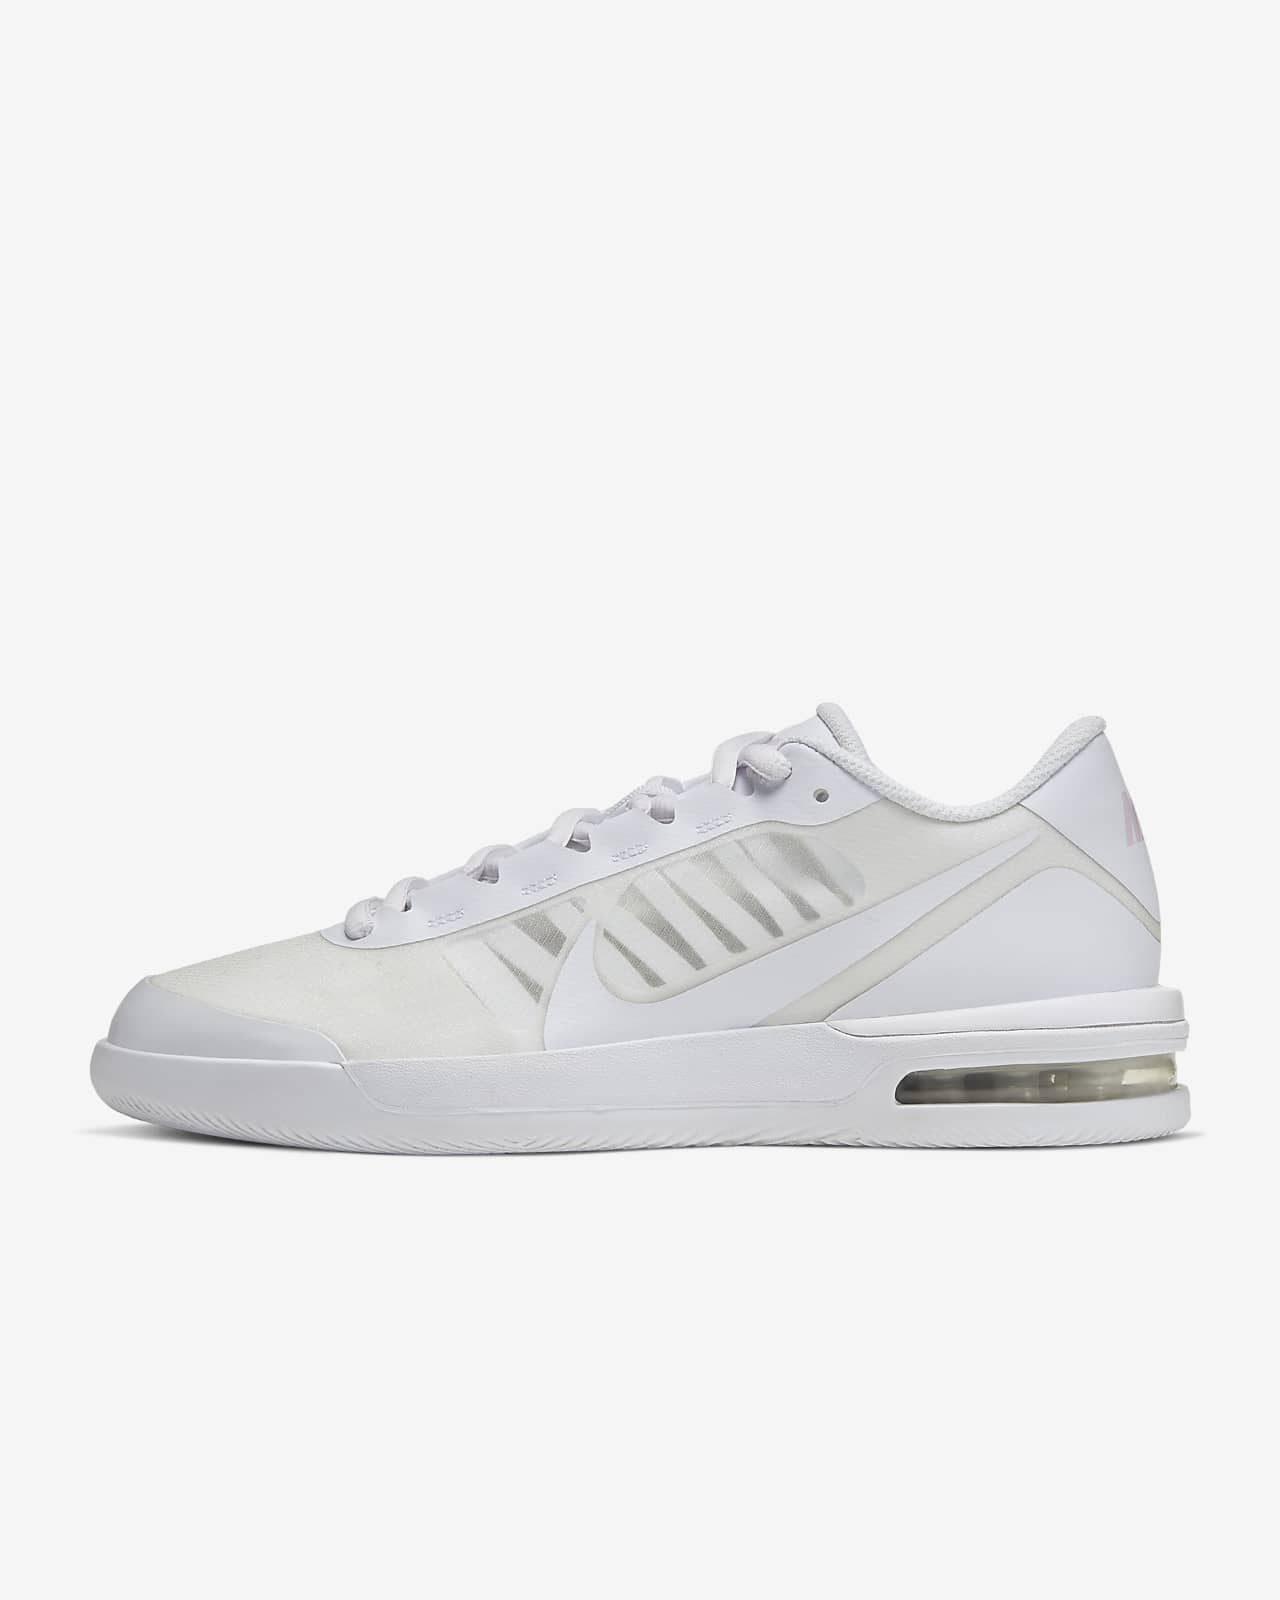 NikeCourt Air Max Vapor Wing MS tennissko til dame